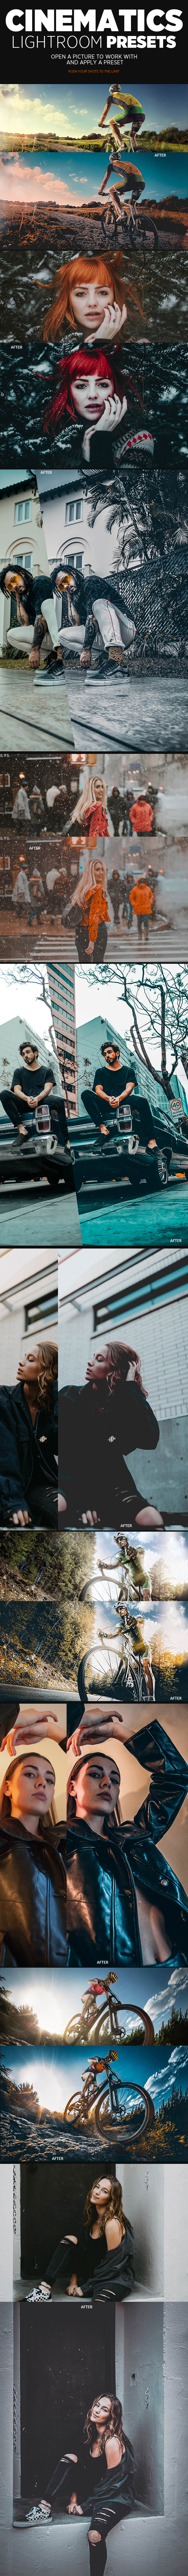 GraphicRiver Cinematics Lightroom Presets 21135251